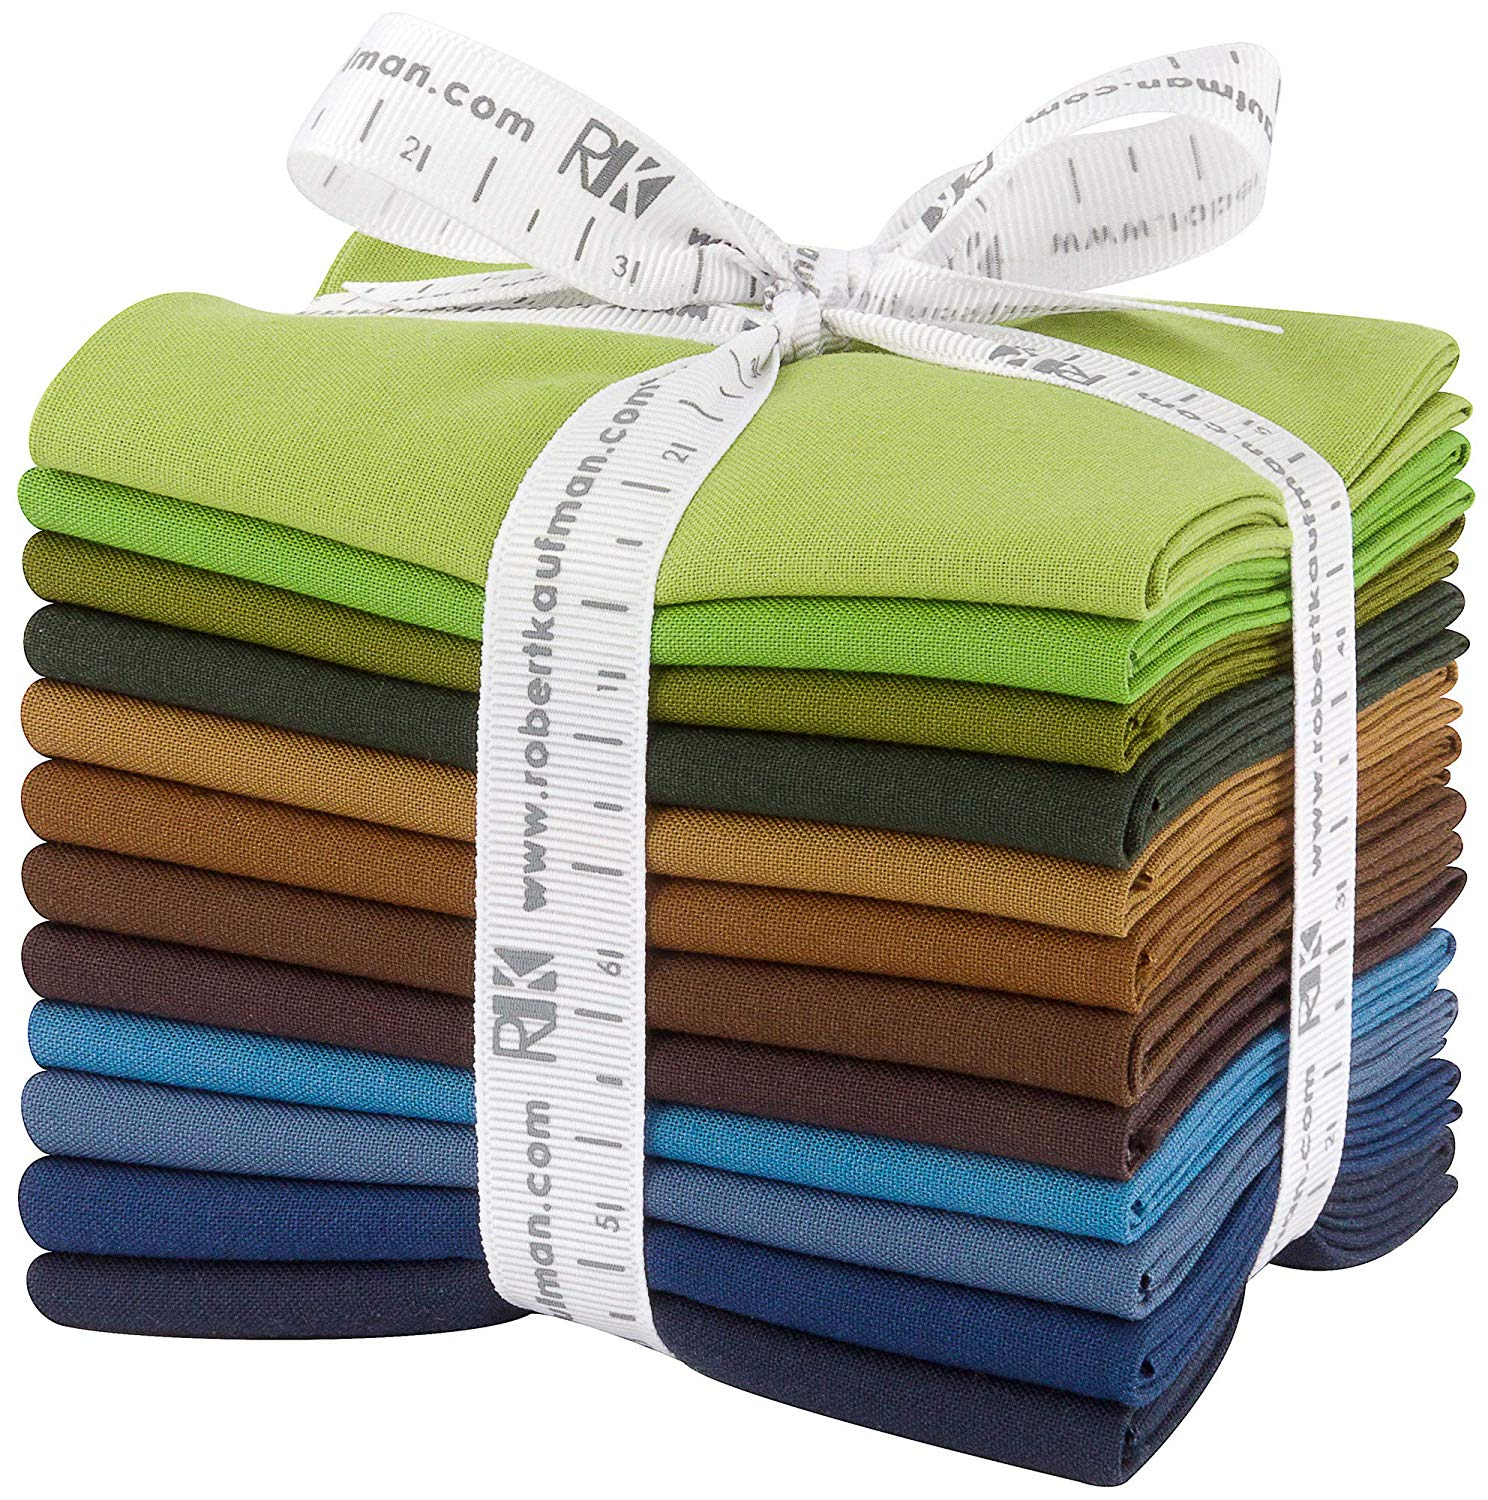 Kona Cotton Solids: Adventure; 12 Fat Quarter Bundle - Robert Kaufman